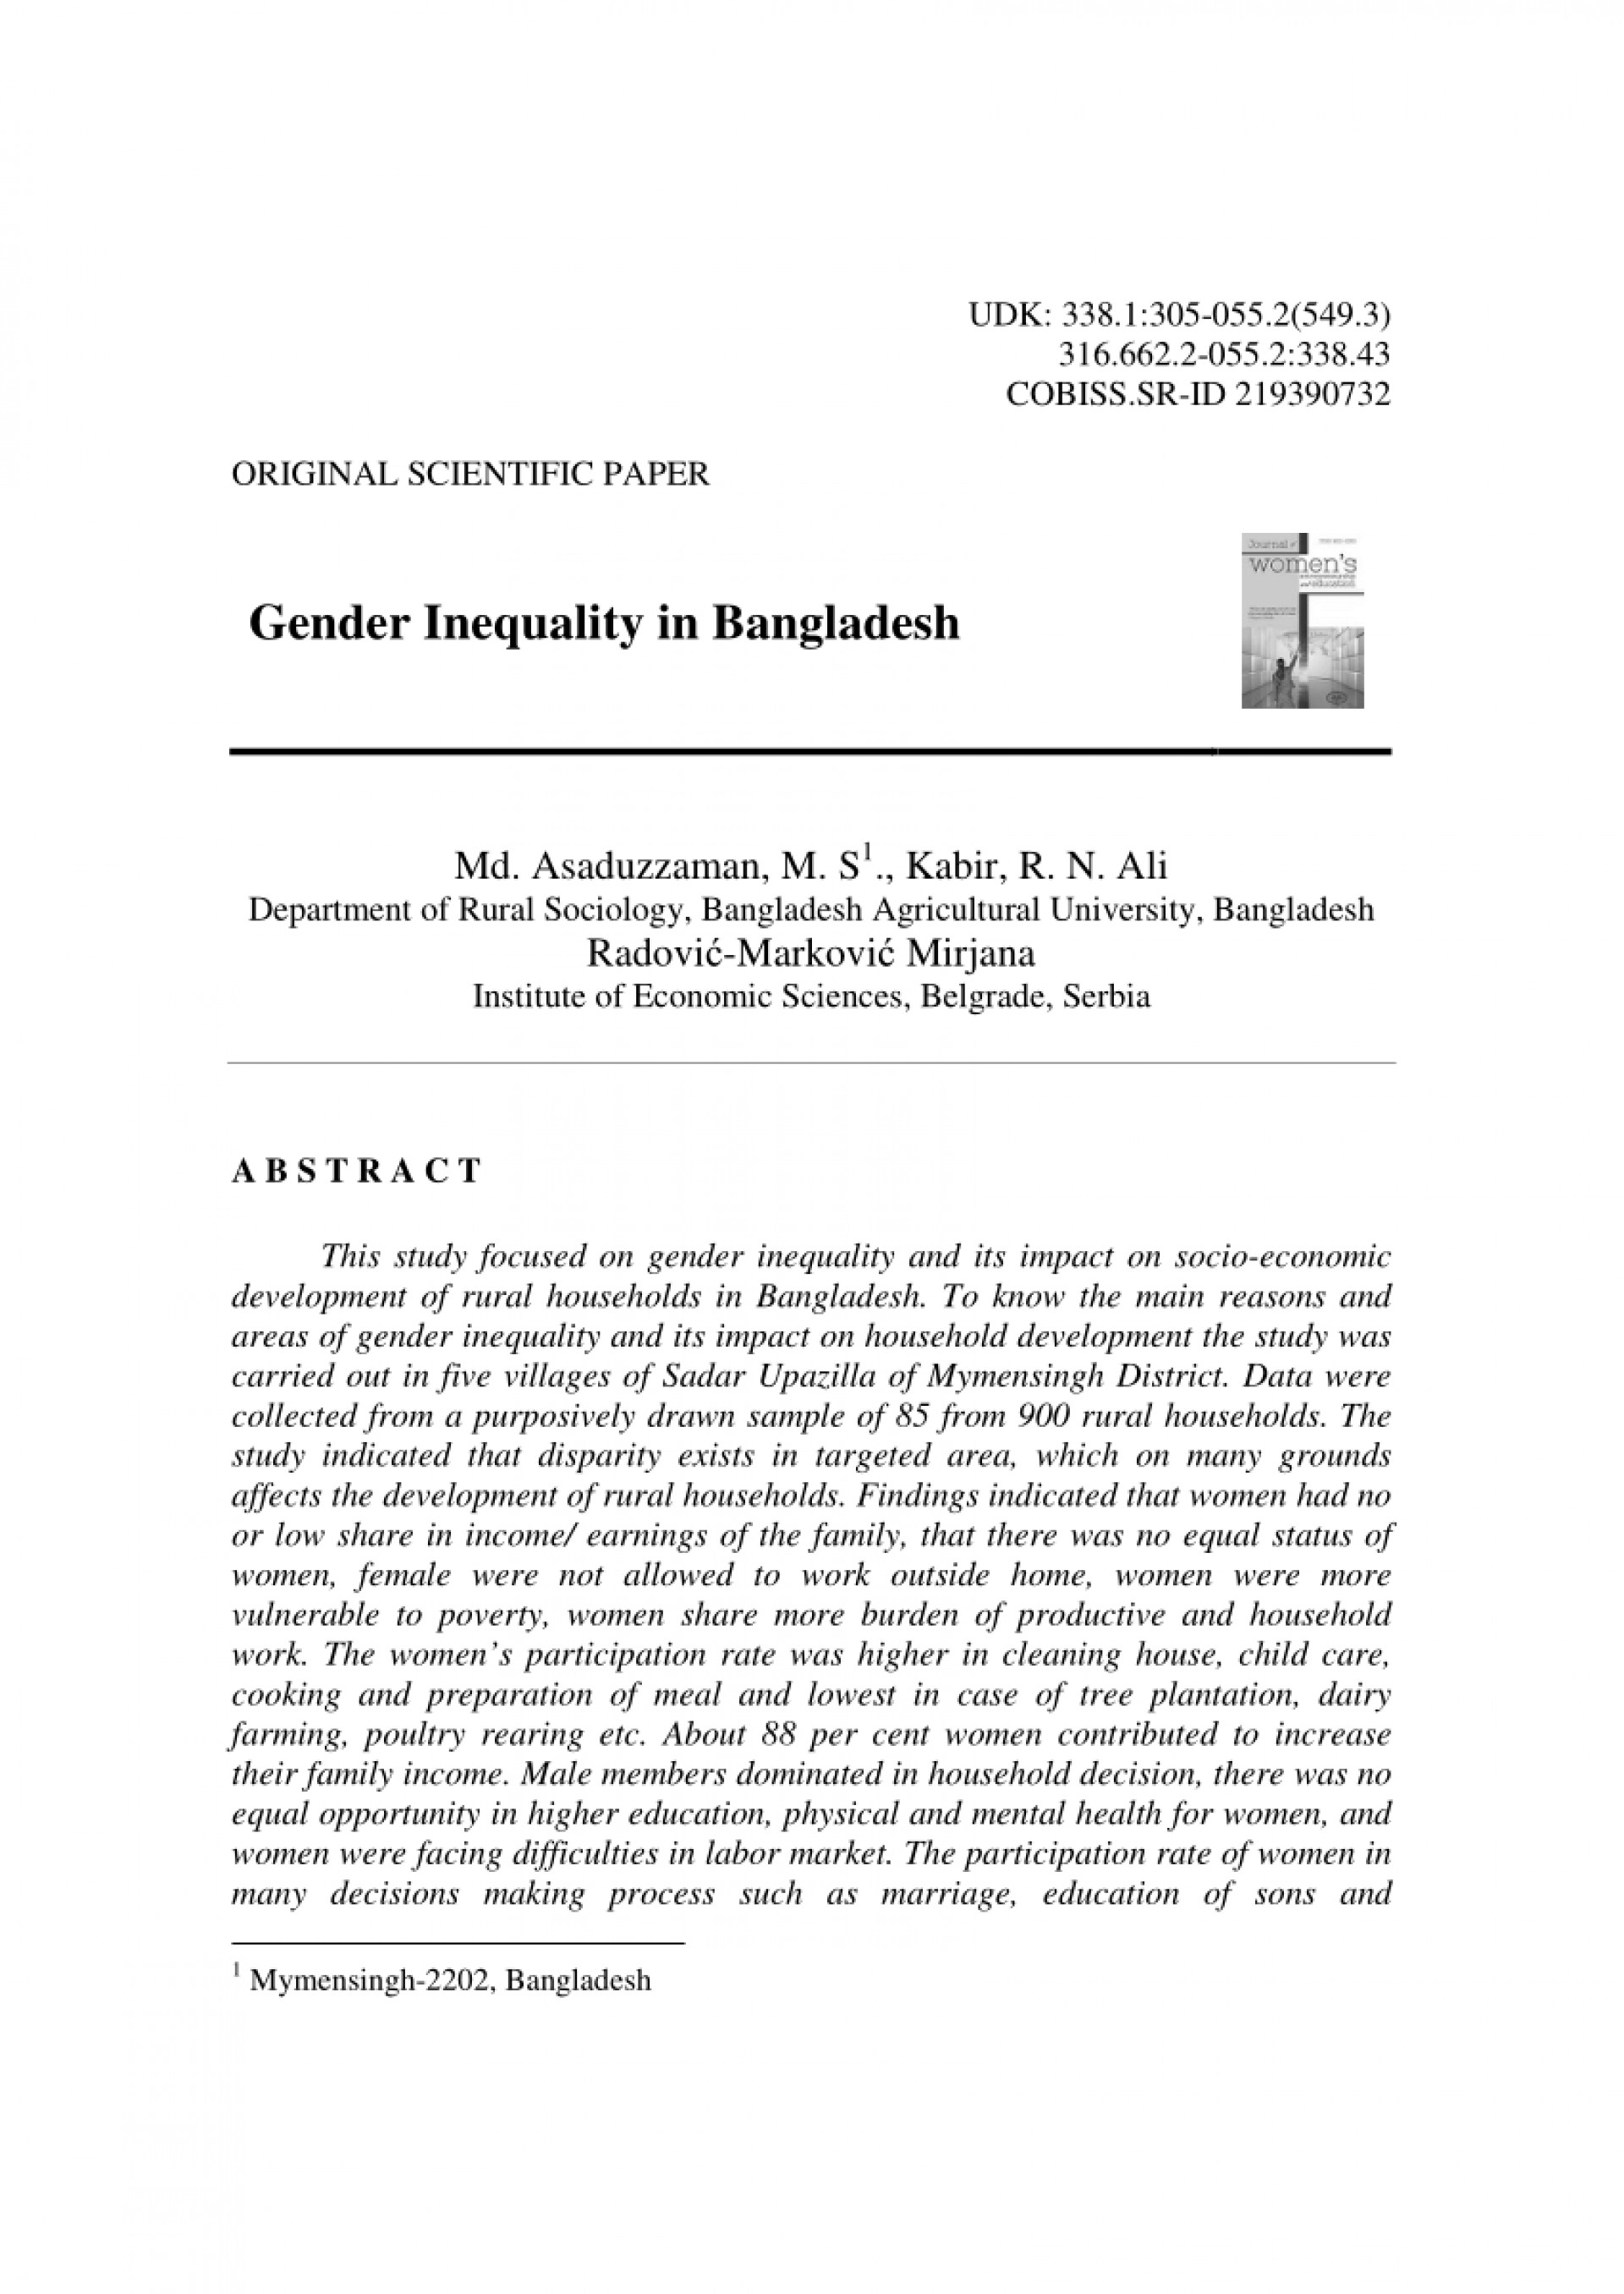 013 Gender Equality In The Workplace Essay Example Wondrous Examples Of Inequality Argumentative Outline 1920